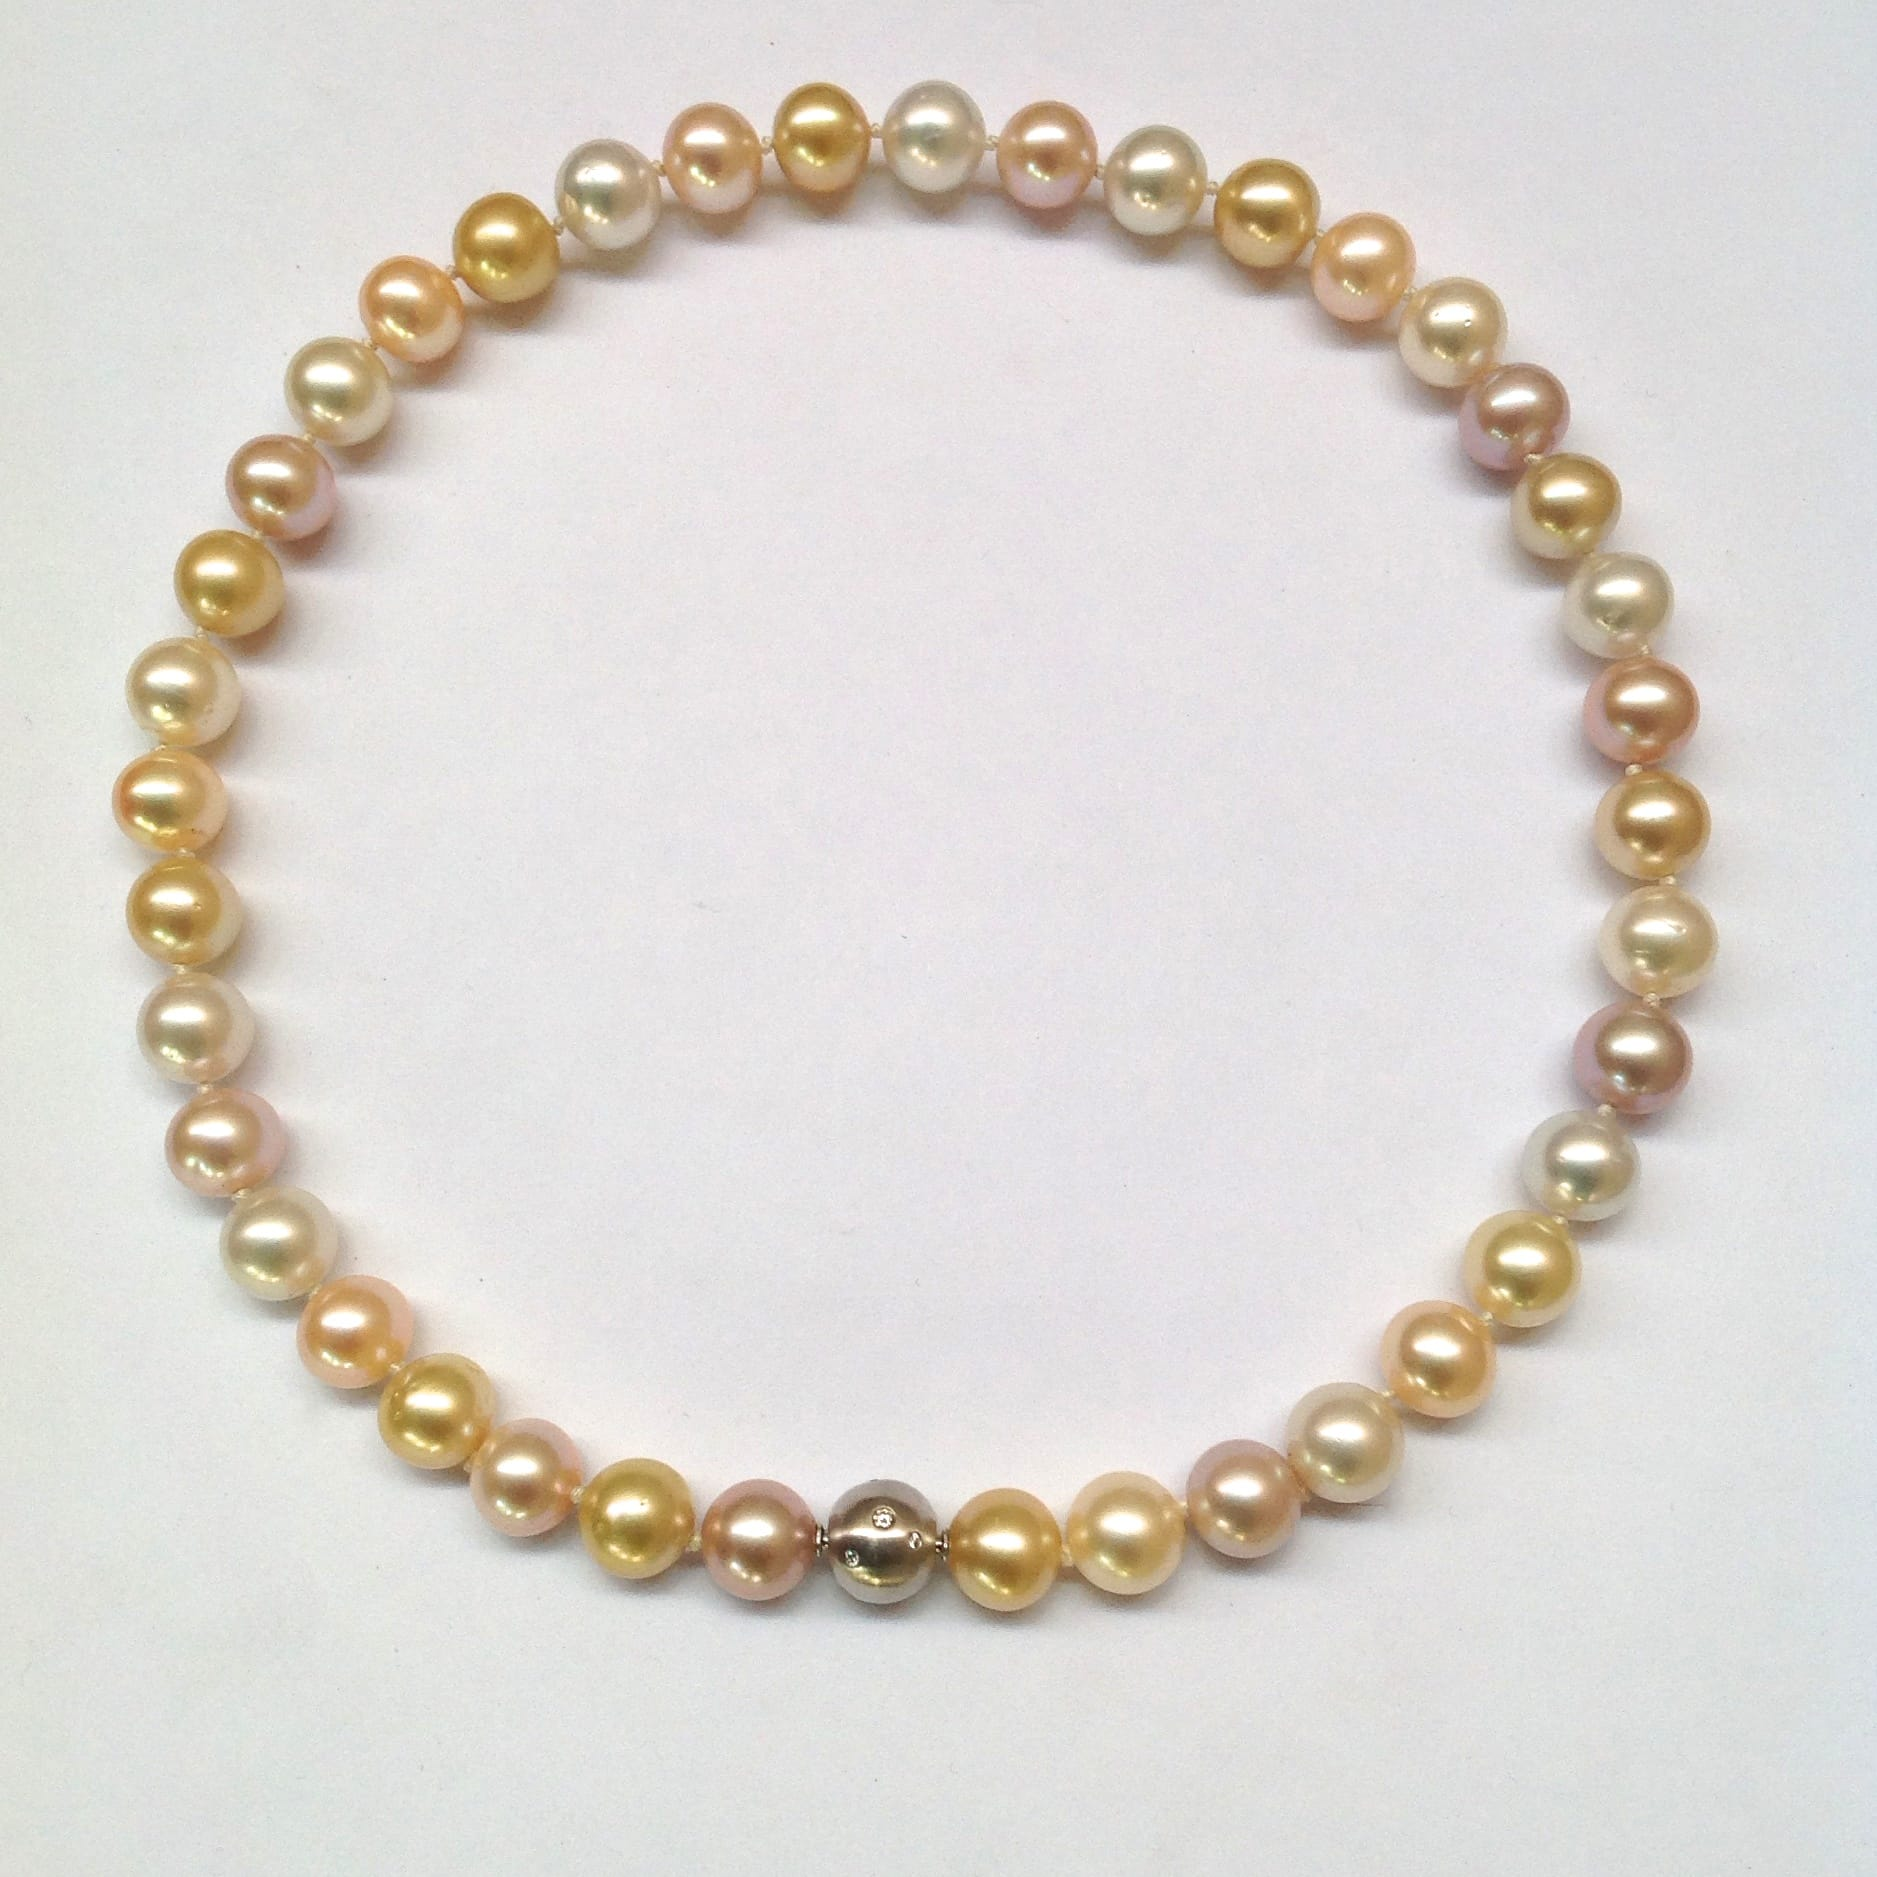 Pink freshwater pearls with white and golden South sea pearls, 10mm in diameter. 18 carat white gold clasp studded with 12 diamonds.